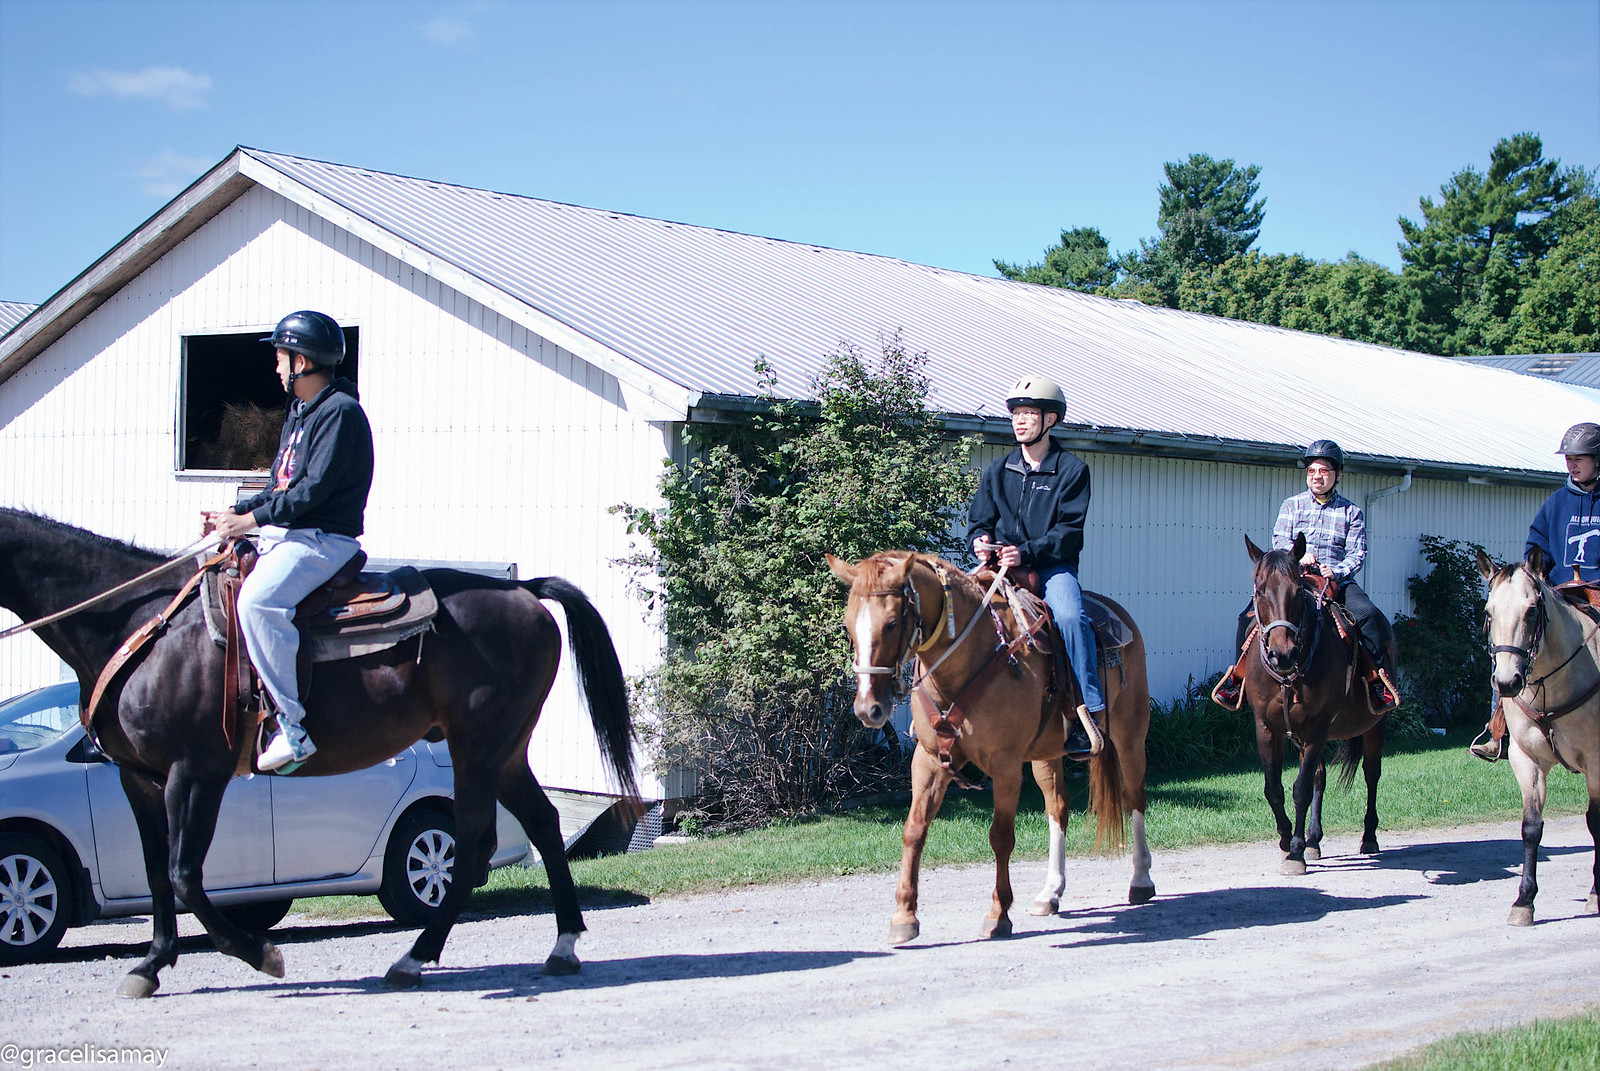 Ontario: Horseback Trail Riding in Port Hope